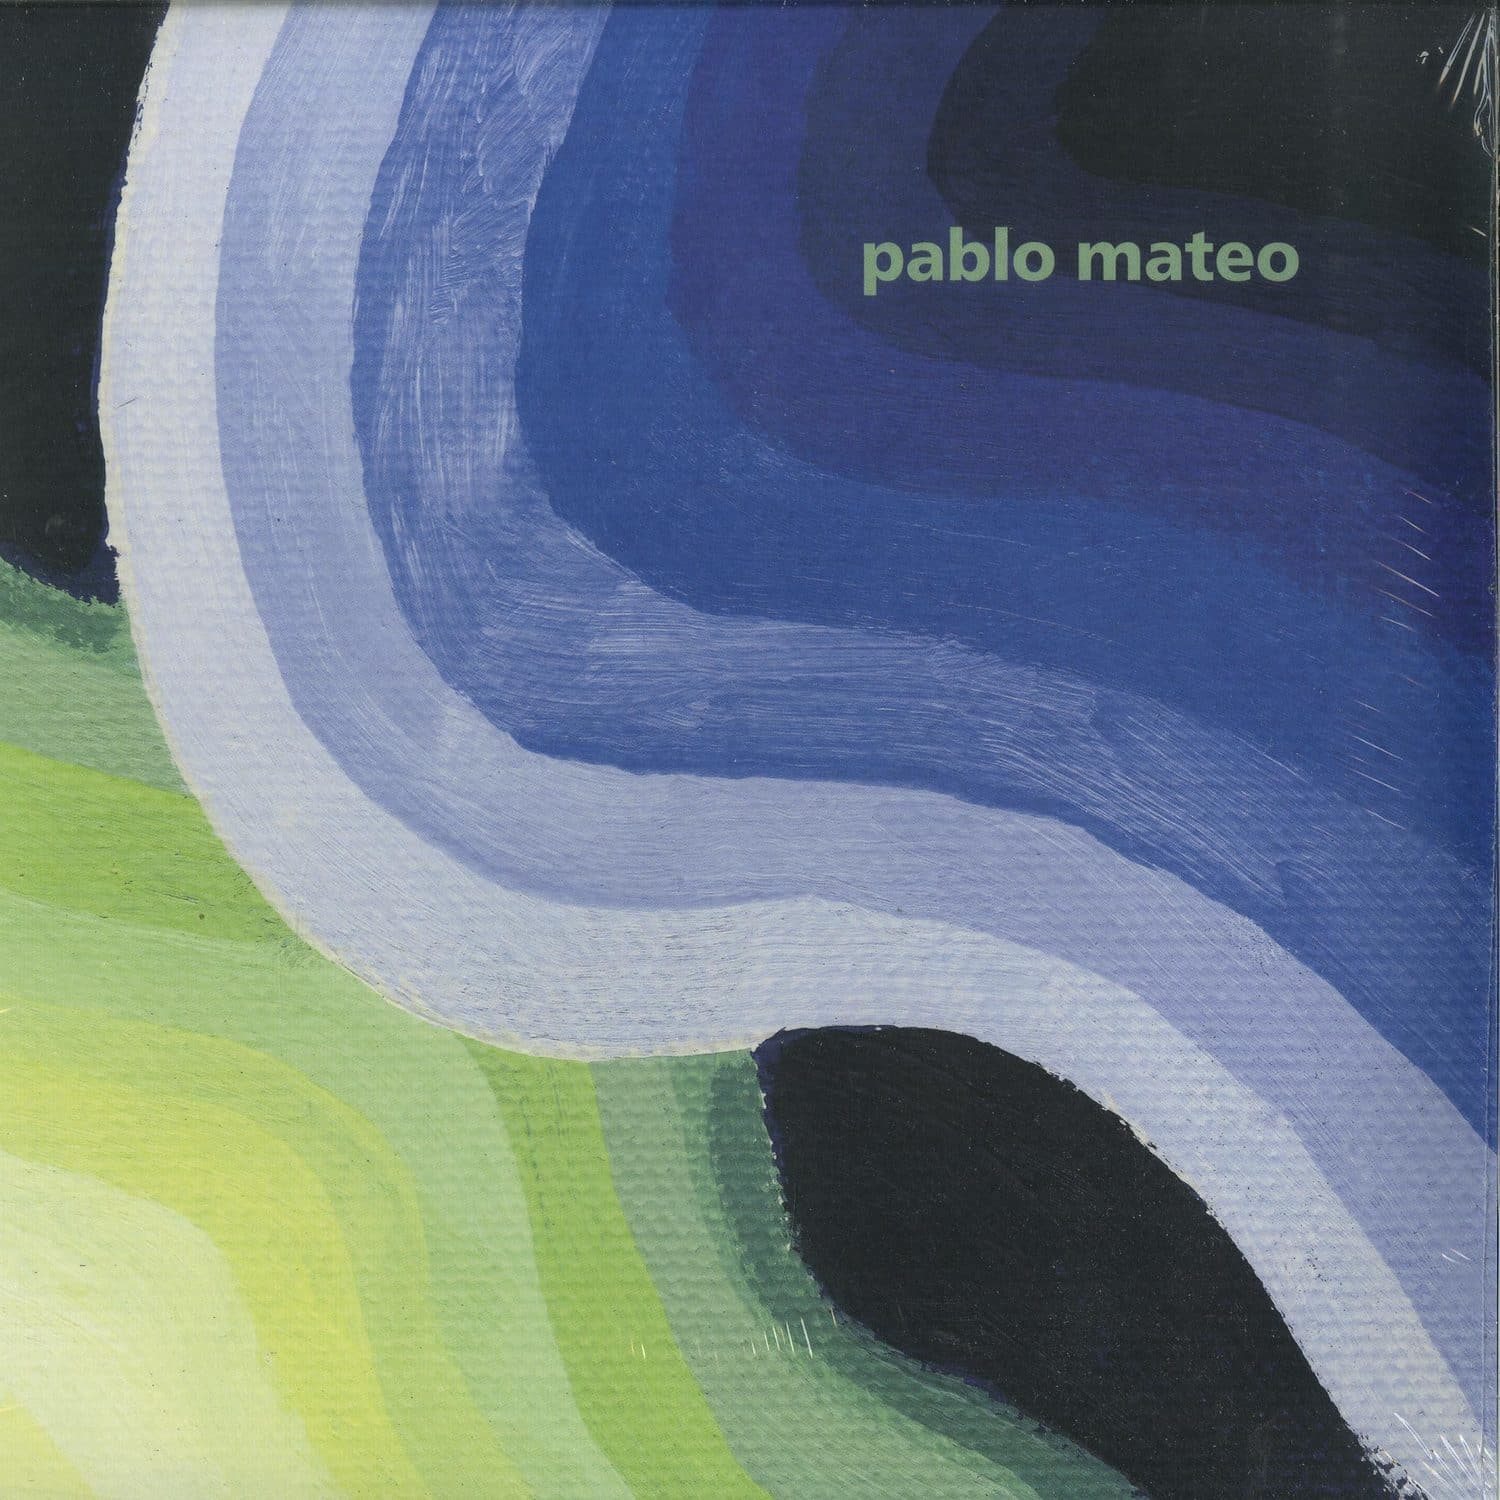 Pablo Mateo - WEIRD REFLECTIONS BEYOND THE SKY